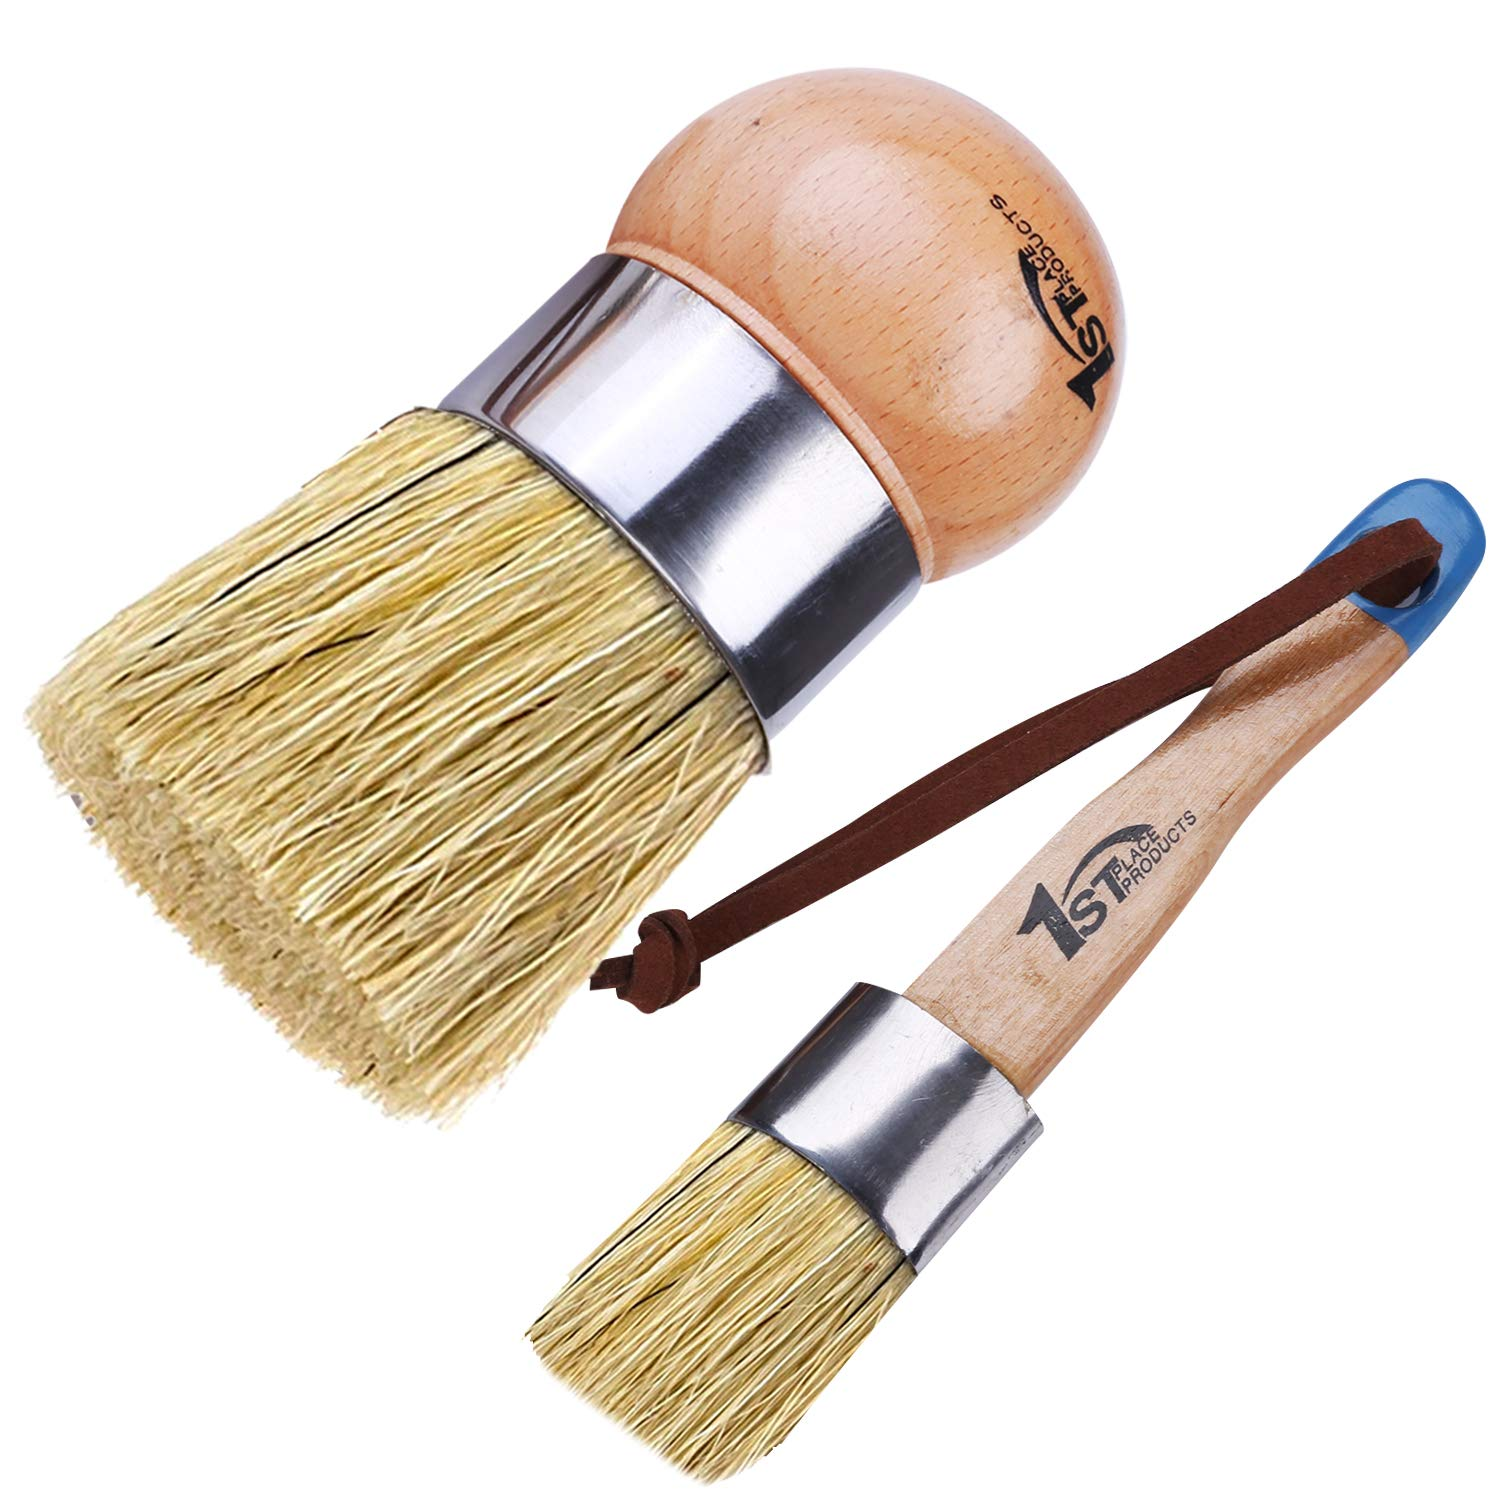 1st Place Products Large Round Palm & Flat Brush Set - Chalk Finish Paint & Wax - All Natural Bristles - Hand Made by 1st Place Products